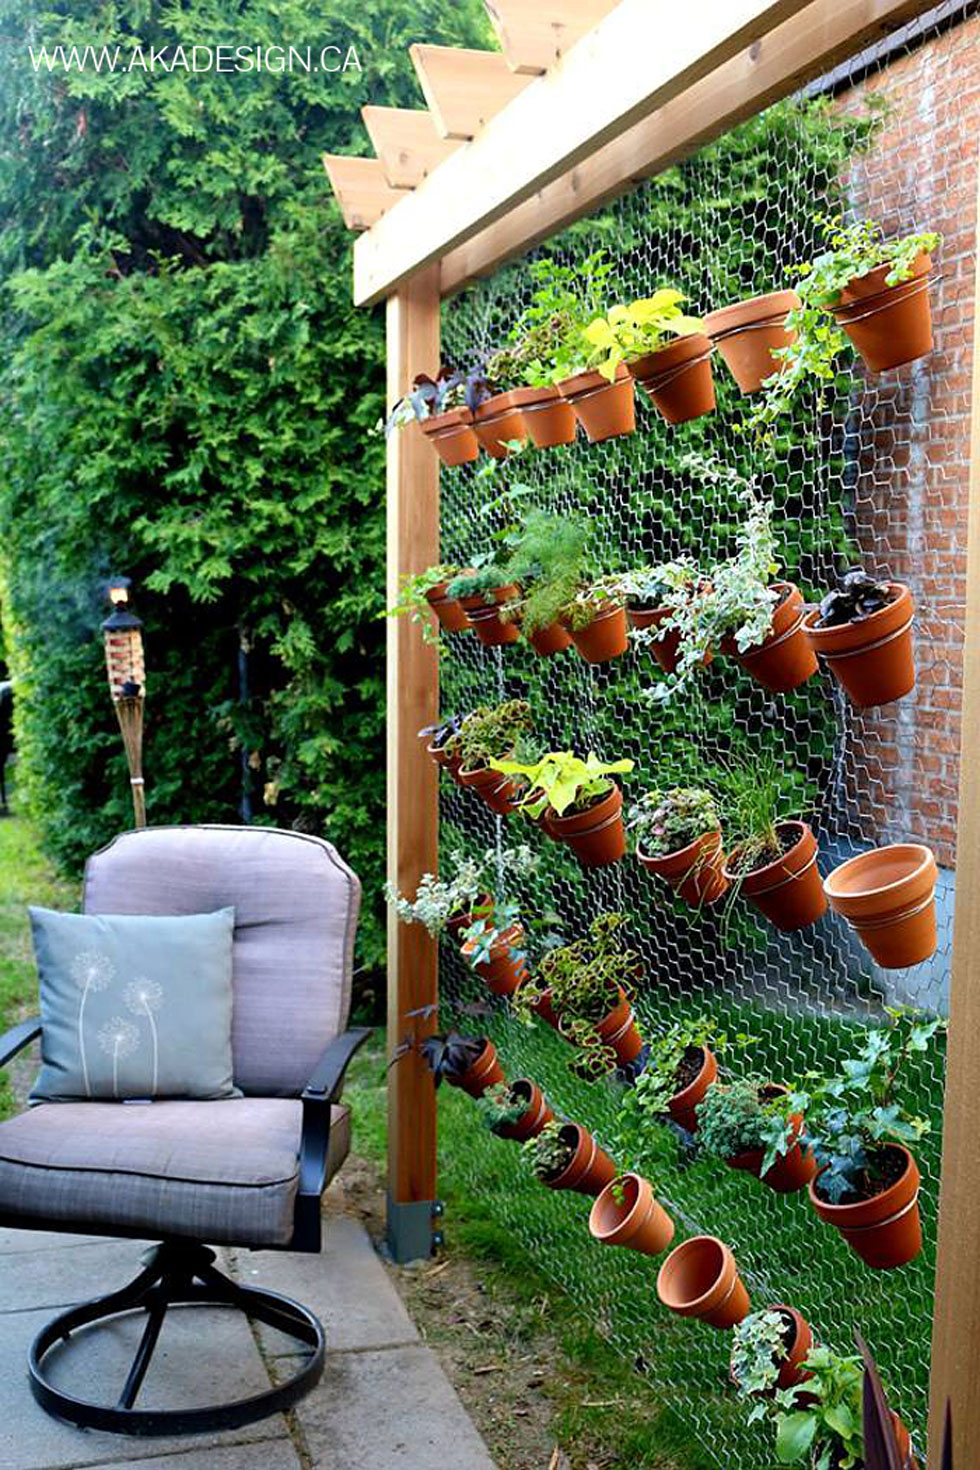 19 Creative Ways to Plant a Vertical Garden - How To Make ... on Tree Planting Ideas For Backyard id=94142